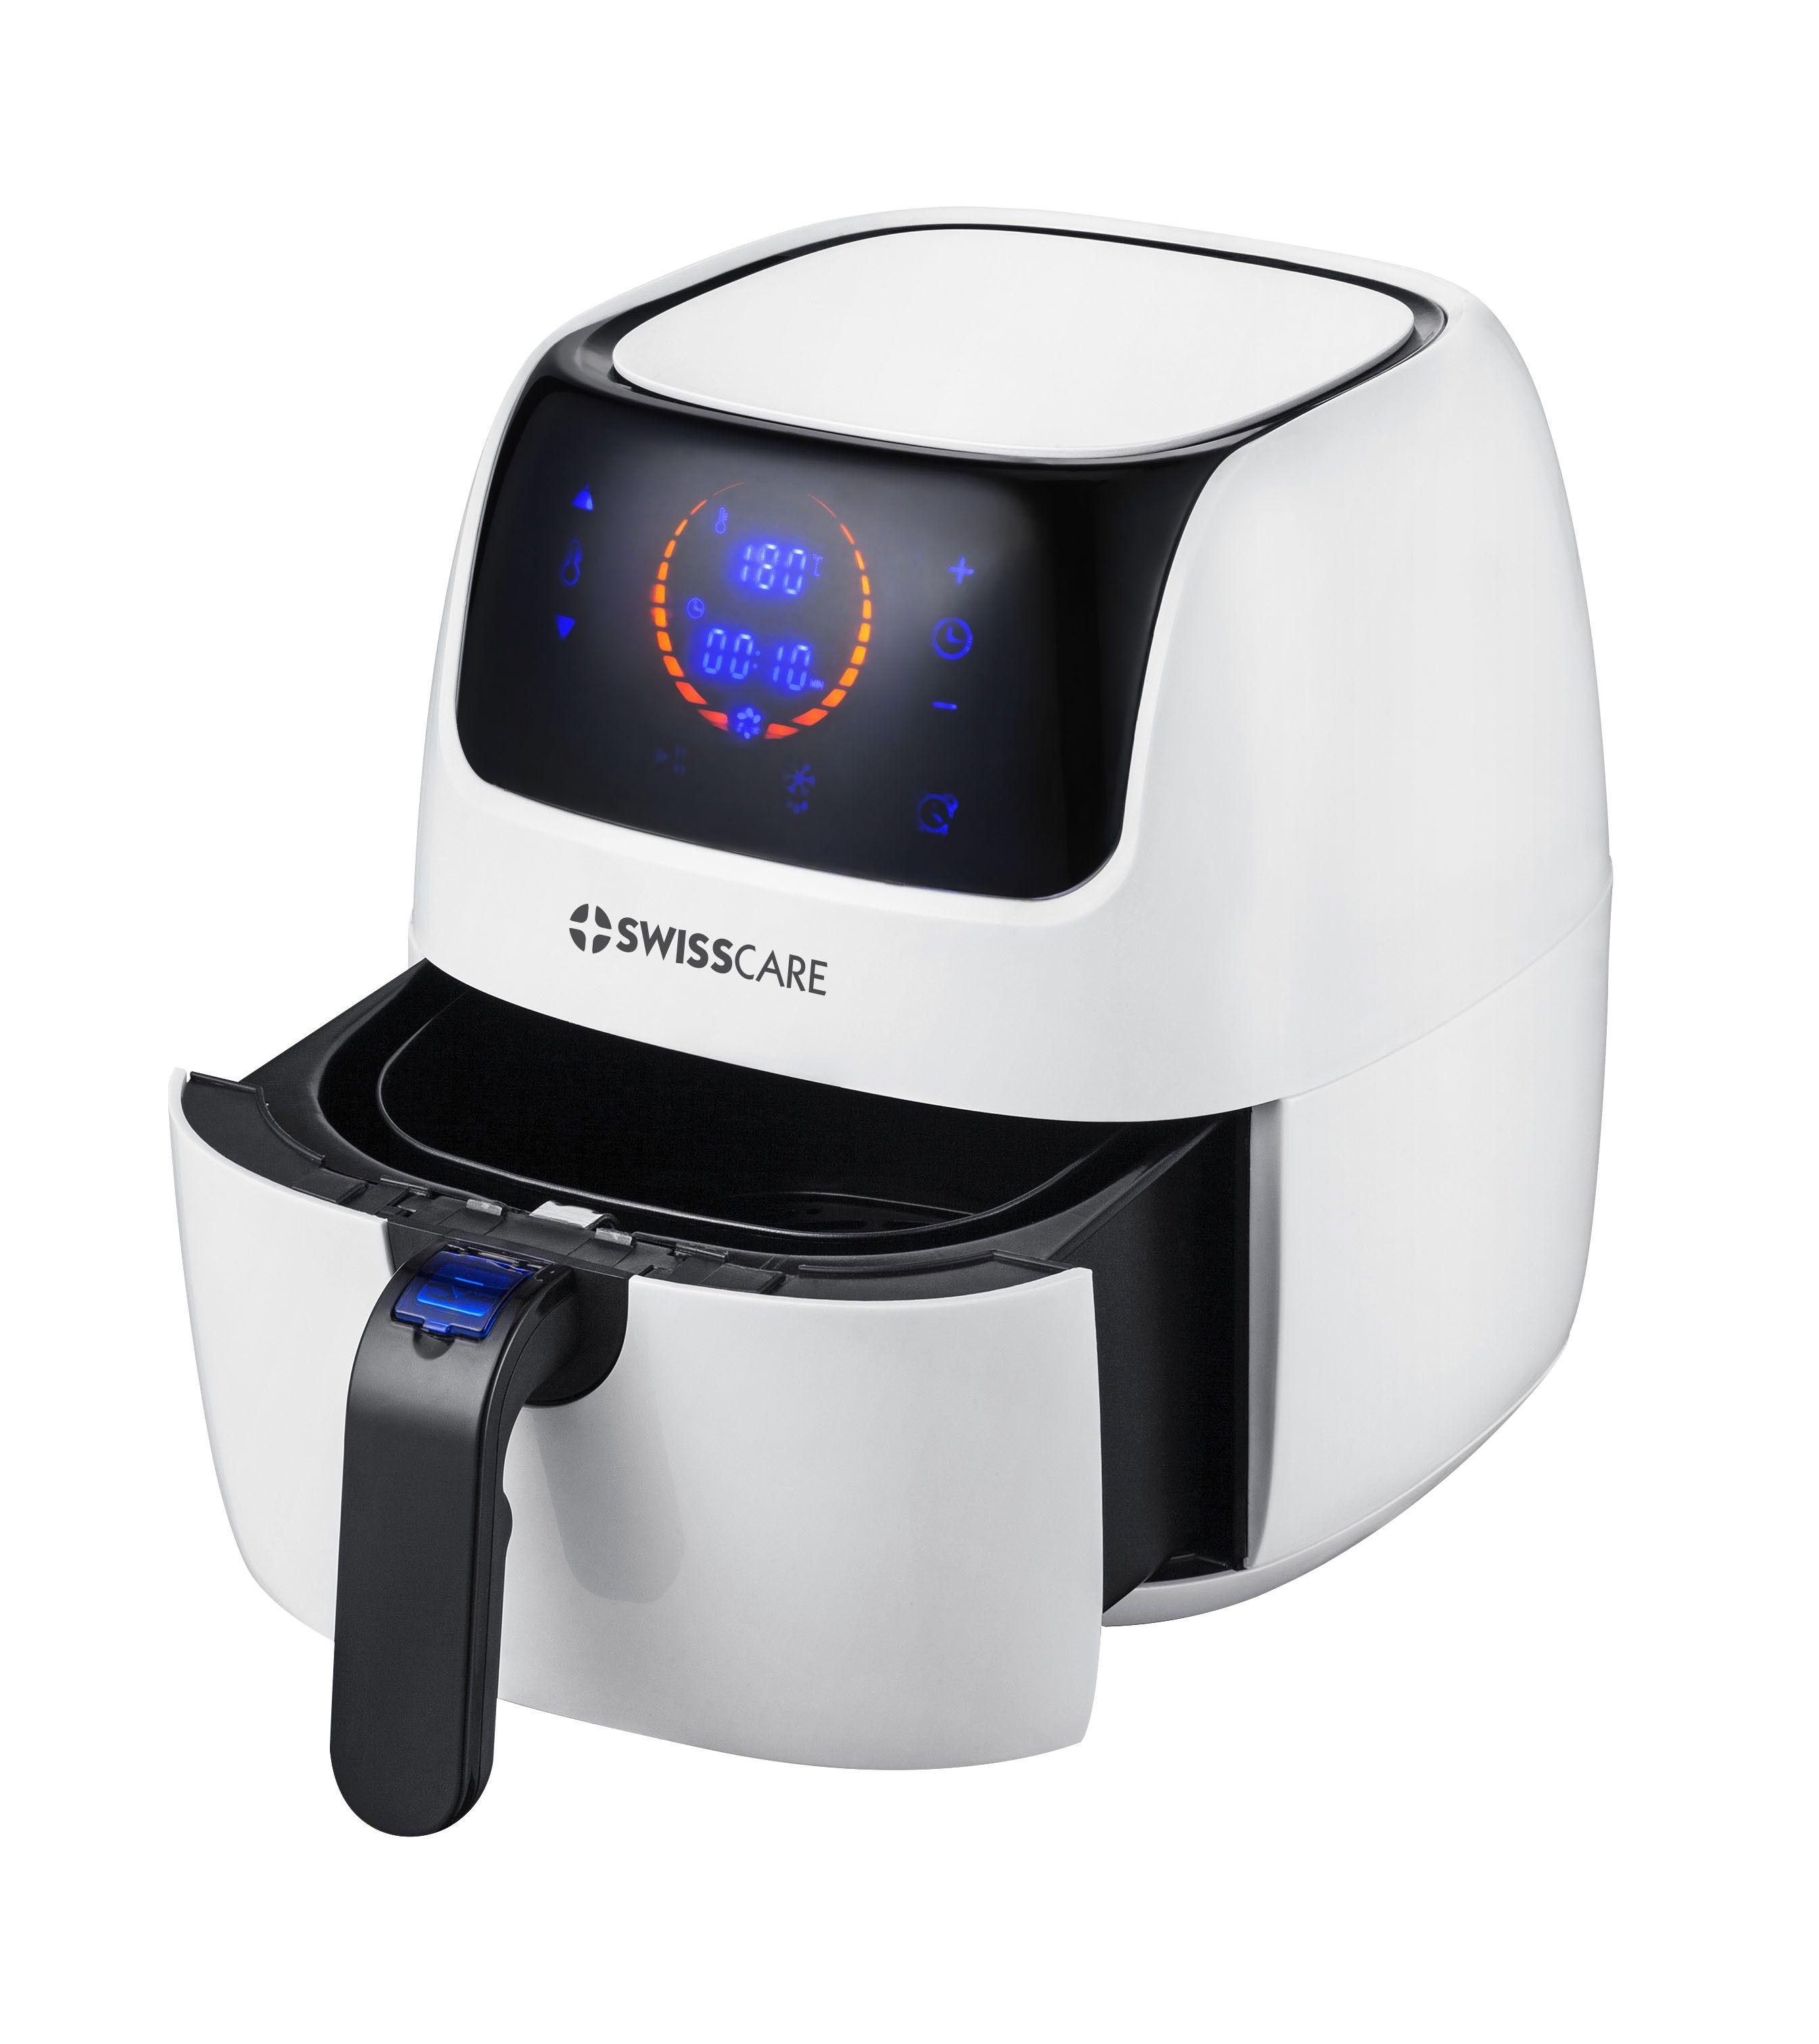 10 in 1 Air Fryer & Multi Cooker 1400 Watts, 3 Litre